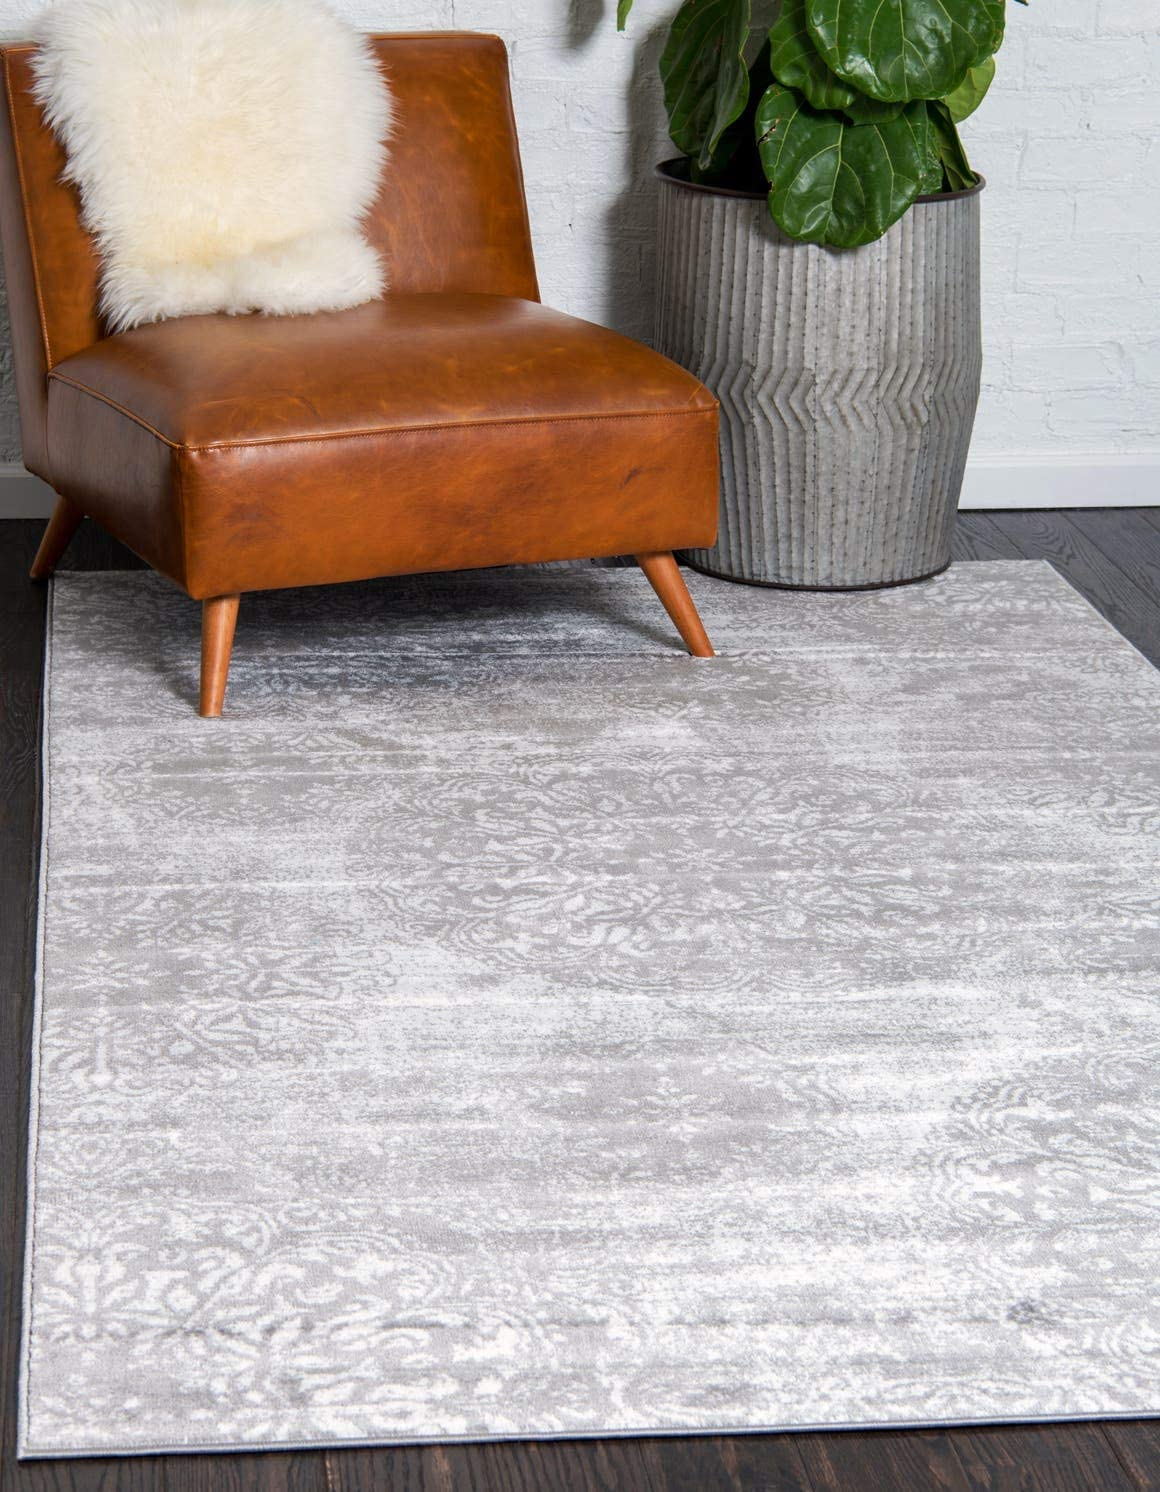 Unique Loom 3138677 Sofia Collection Traditional Vintage Beige Area Rug, 4 0 x 6 0 Rectangle, Gray